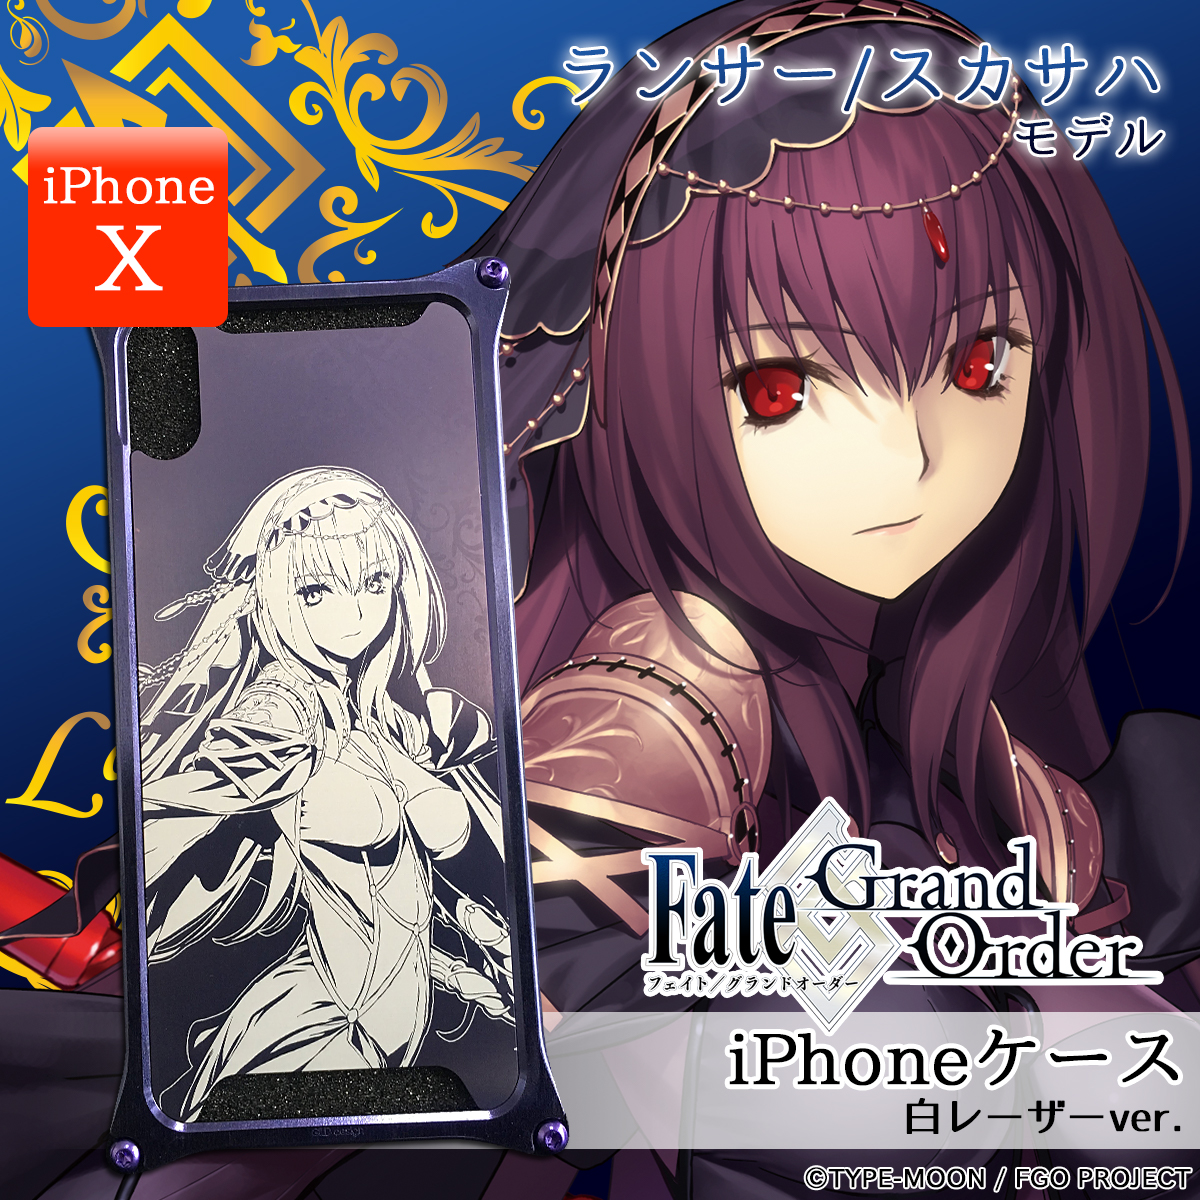 『Fate/Grand Order』×『GILD design』iPhoneX/Xsケース ランサー/スカサハ 白レーザーver.